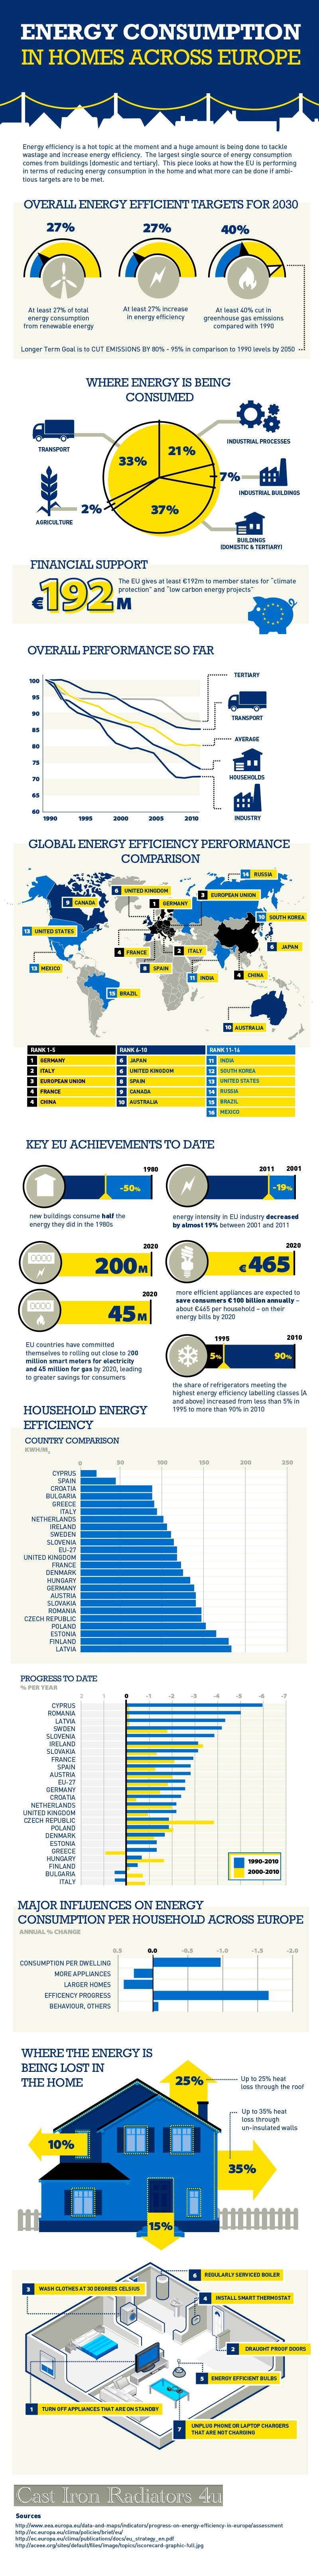 How Energy Efficient Are European Homes